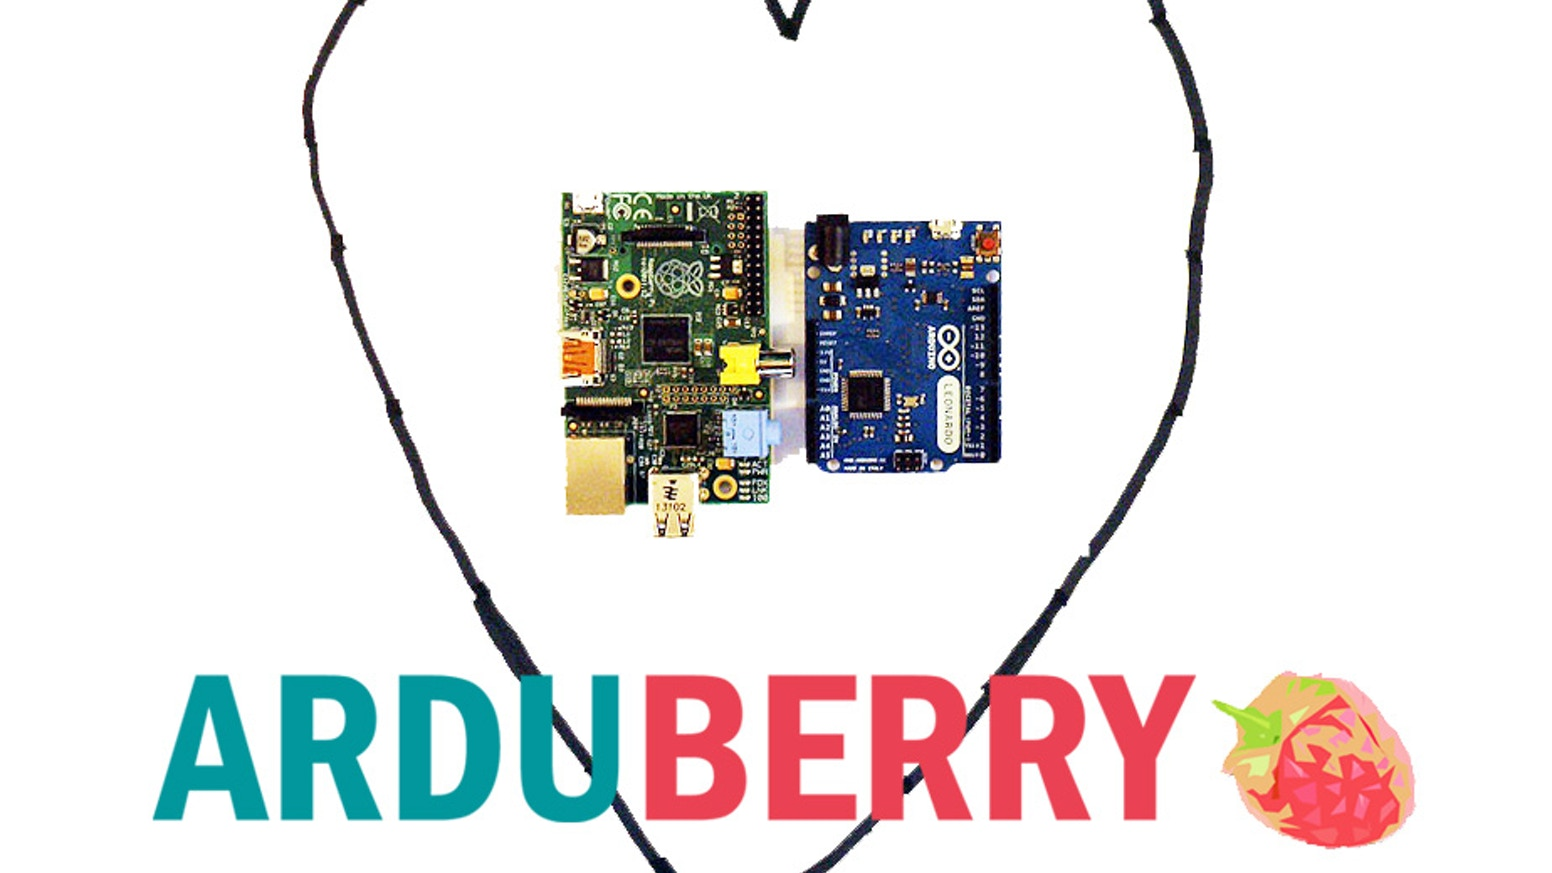 Arduberry unites Arduino shields and the Raspberry Pi with a simple, inexpensive hardware solution. Slide on, copy your code, and go.